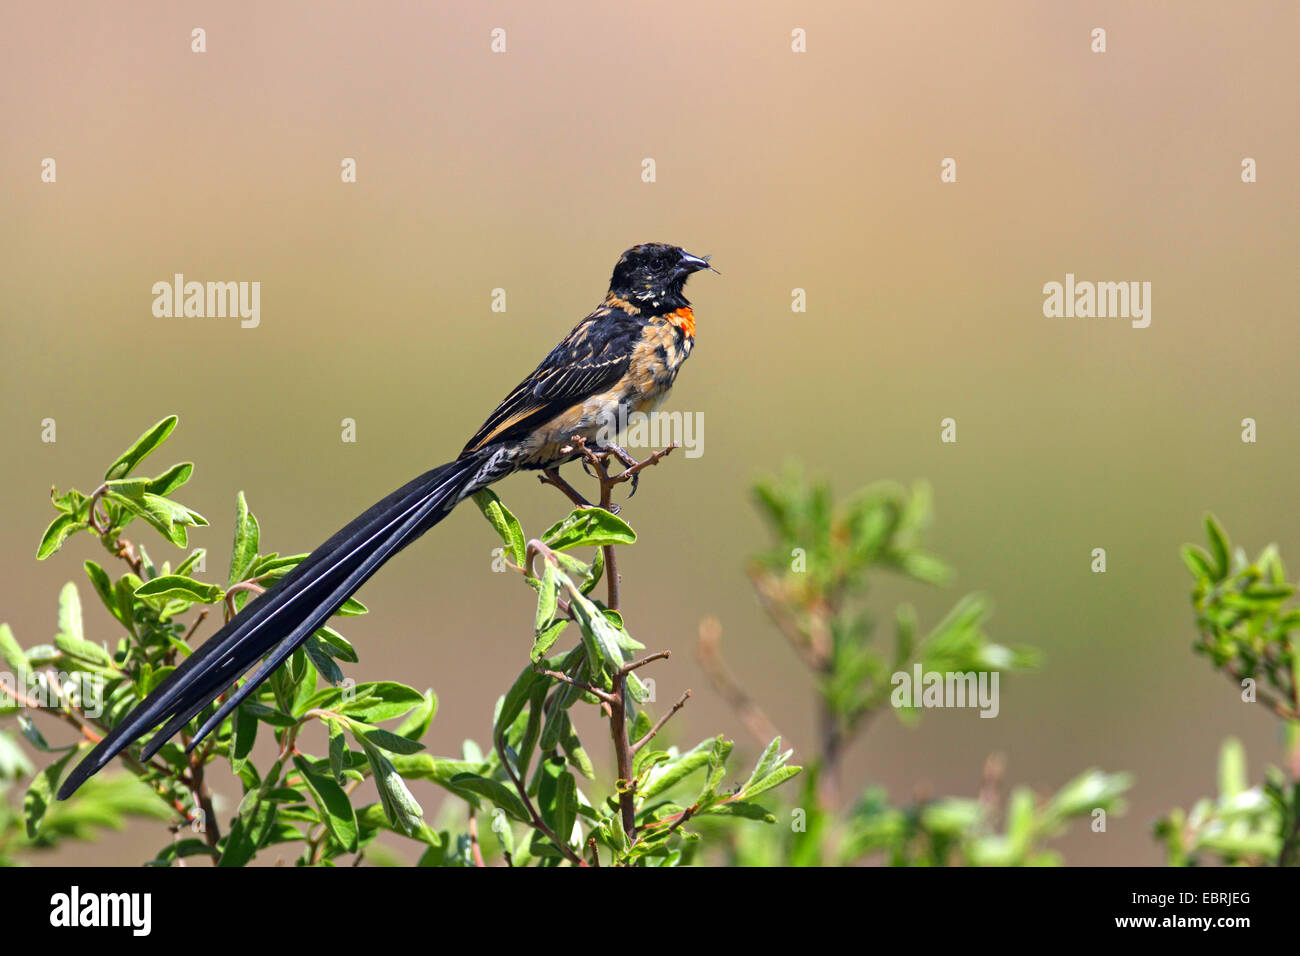 red-collared whydah (Euplectes ardens), male sits on a shrub with insects in its bill, South Africa, North-West - Stock Image